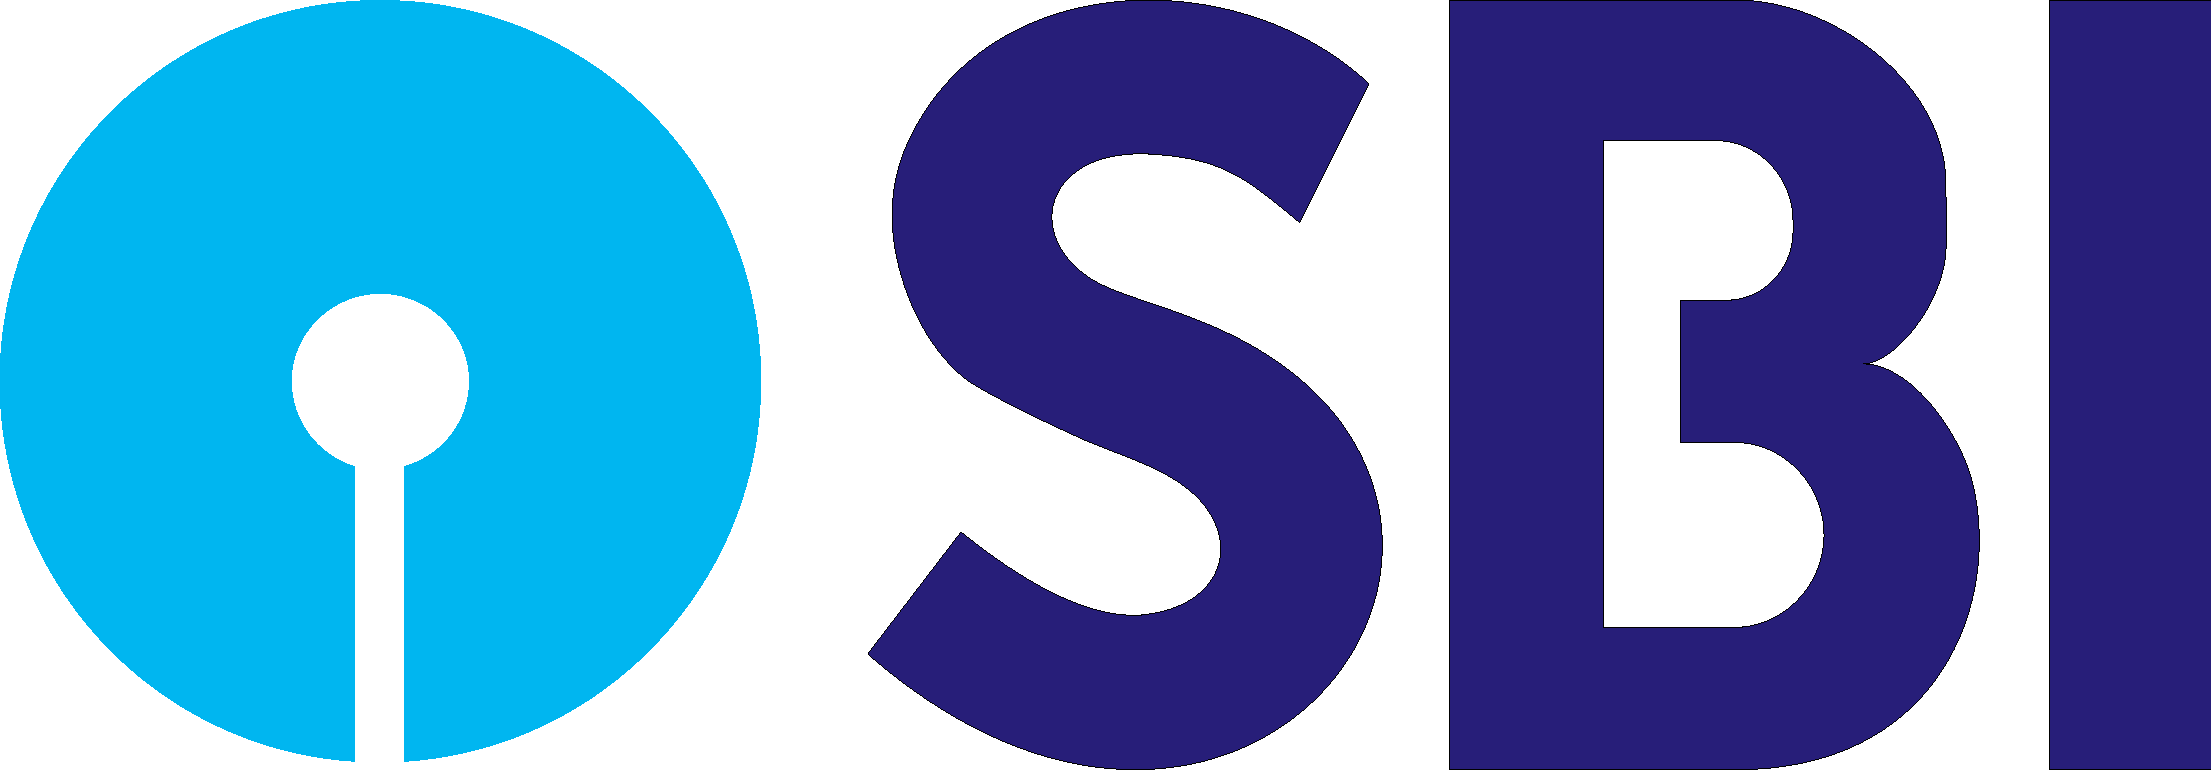 United Auto Group >> sbi logo [State Bank of India Group] - PNG-SVG Logo, Vector, Template Free Downloads